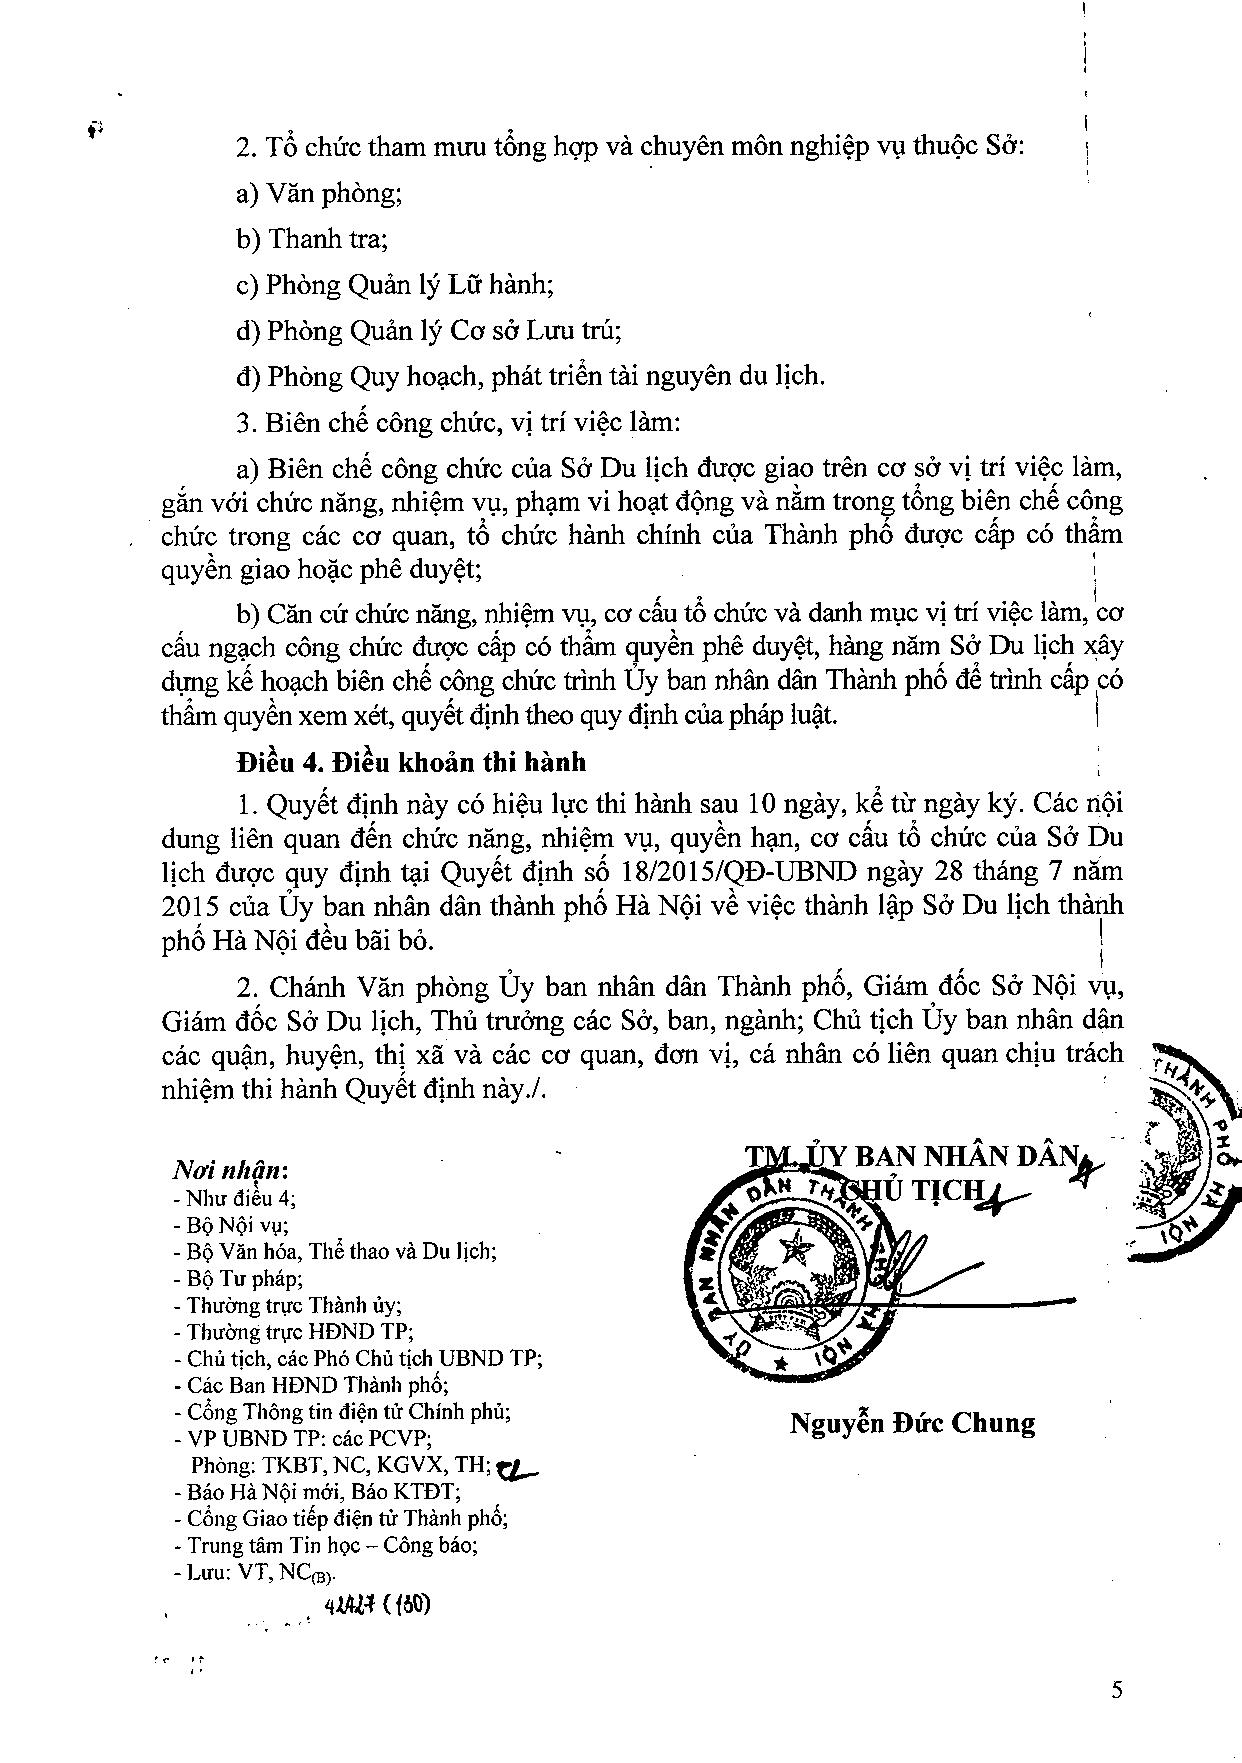 qdpq-45-2016-01signed-page-005.jpg